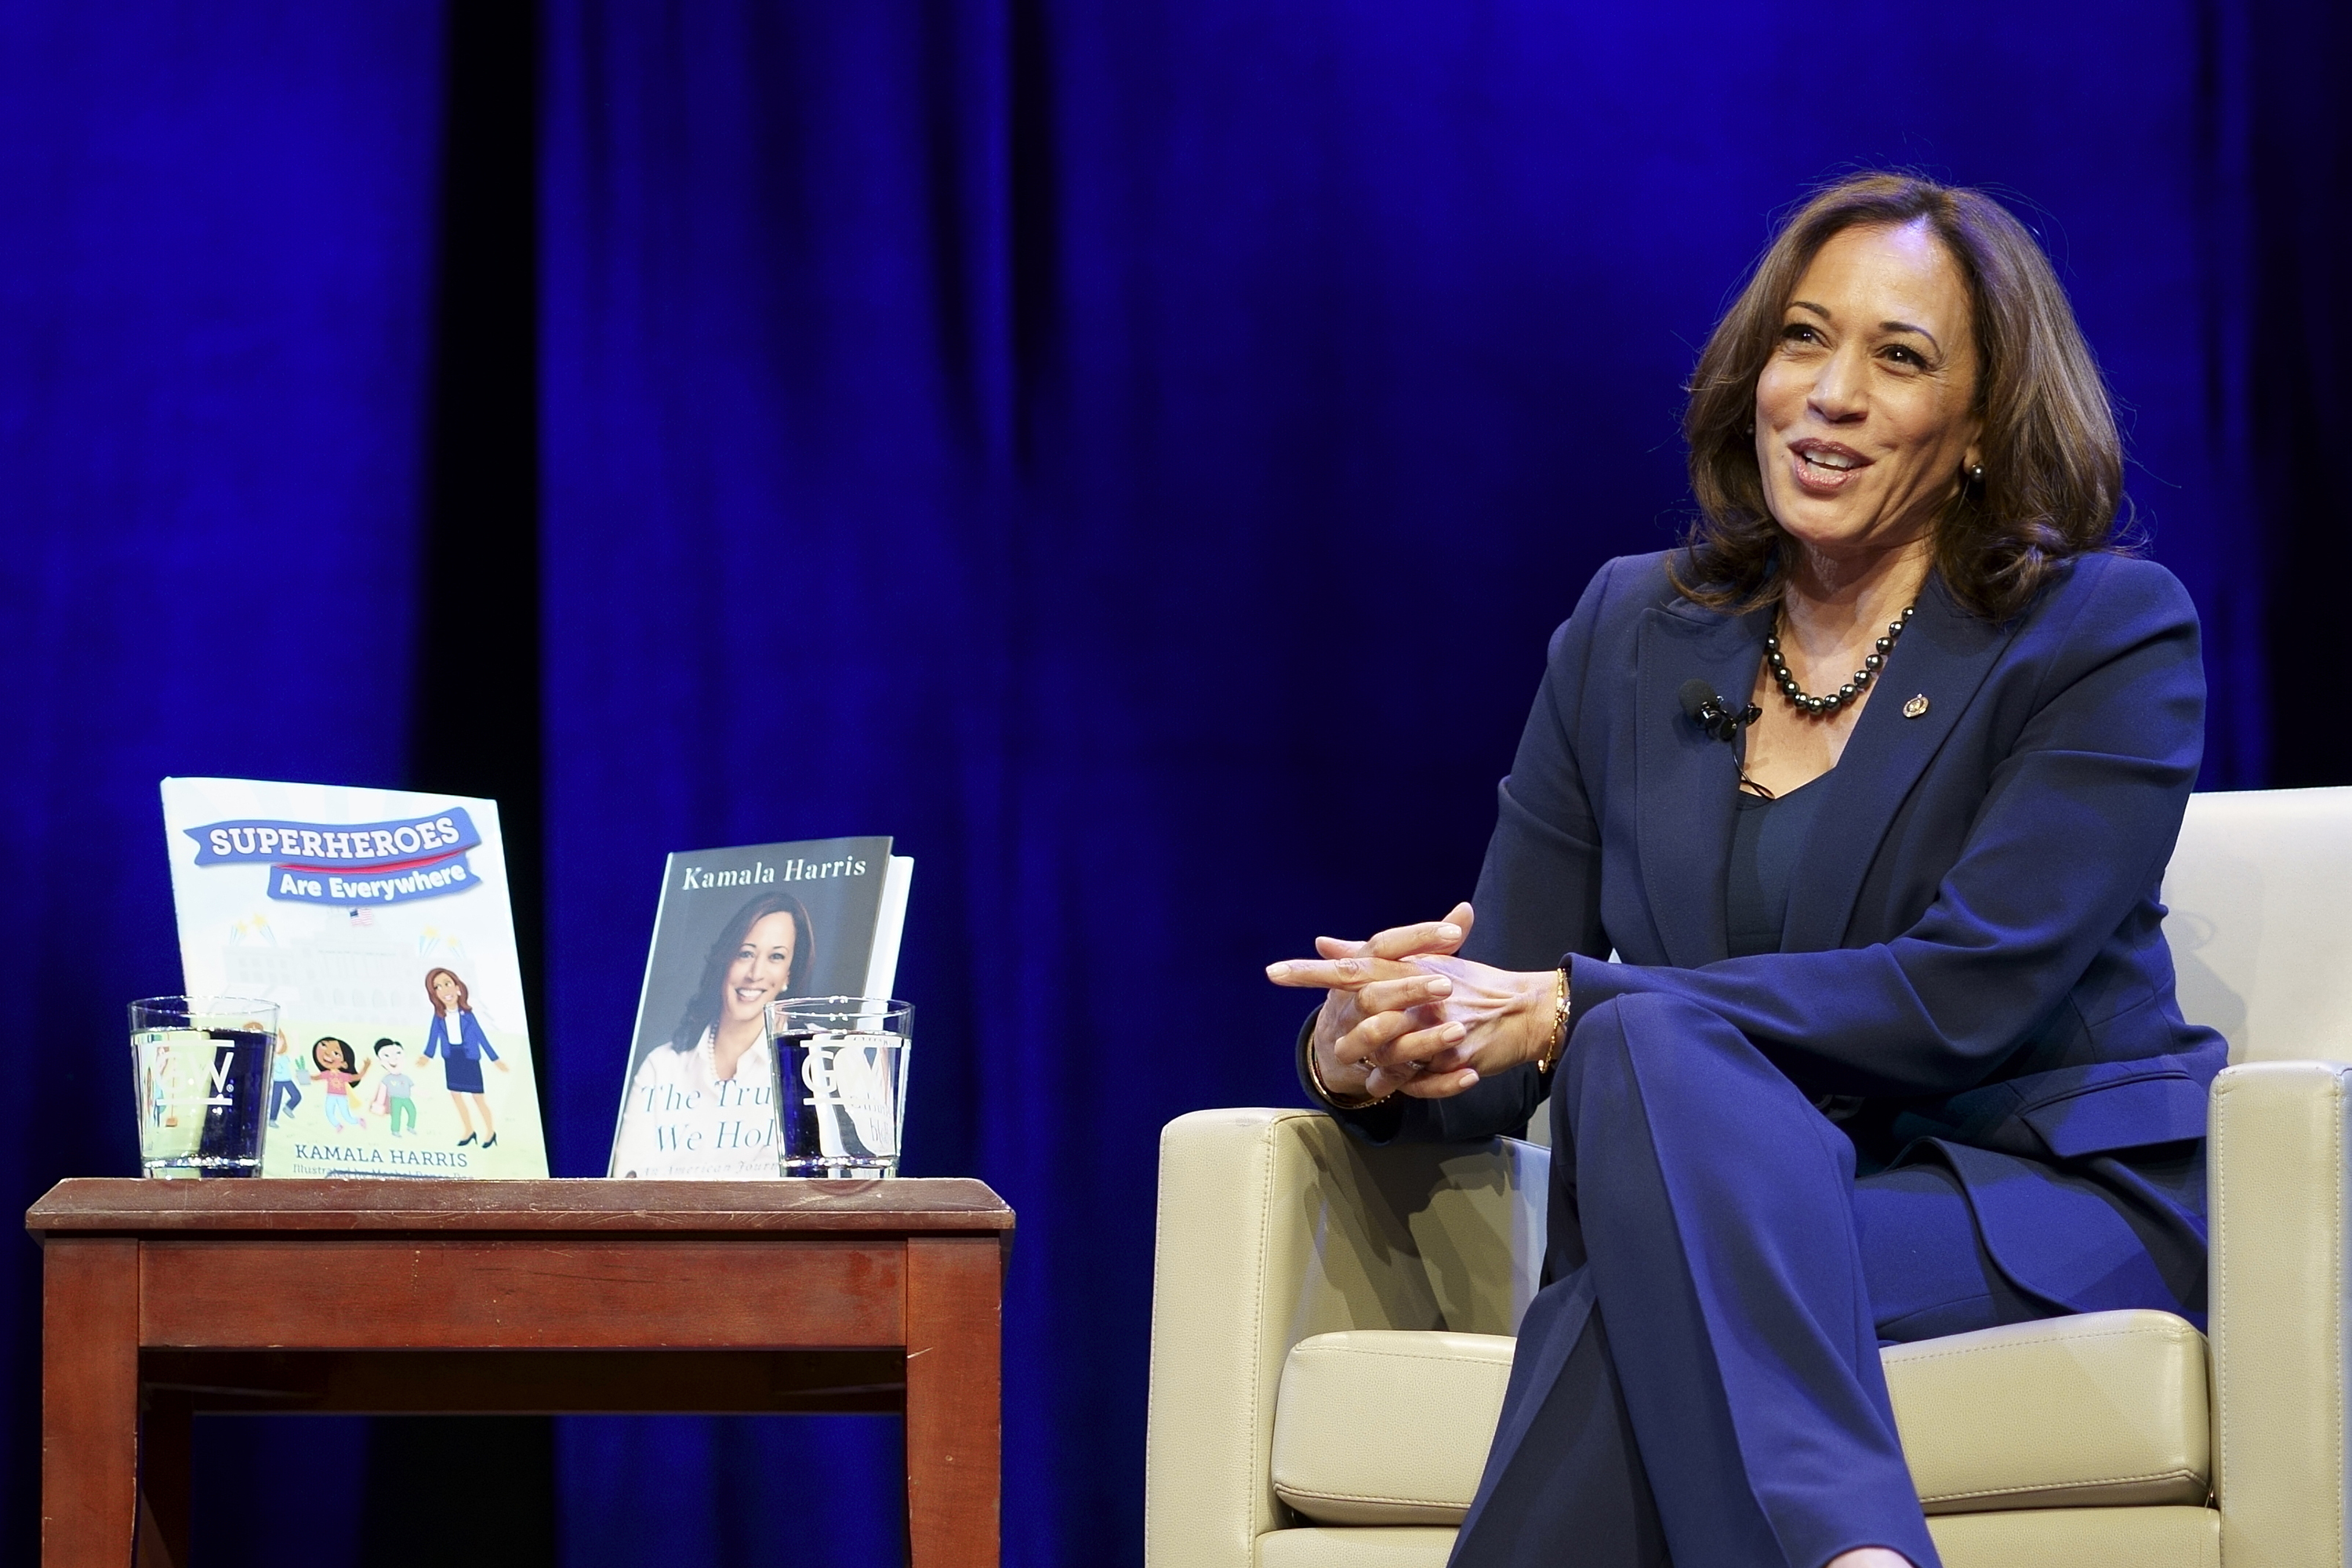 Kamala Harris books surge in popularity after election   ABC27